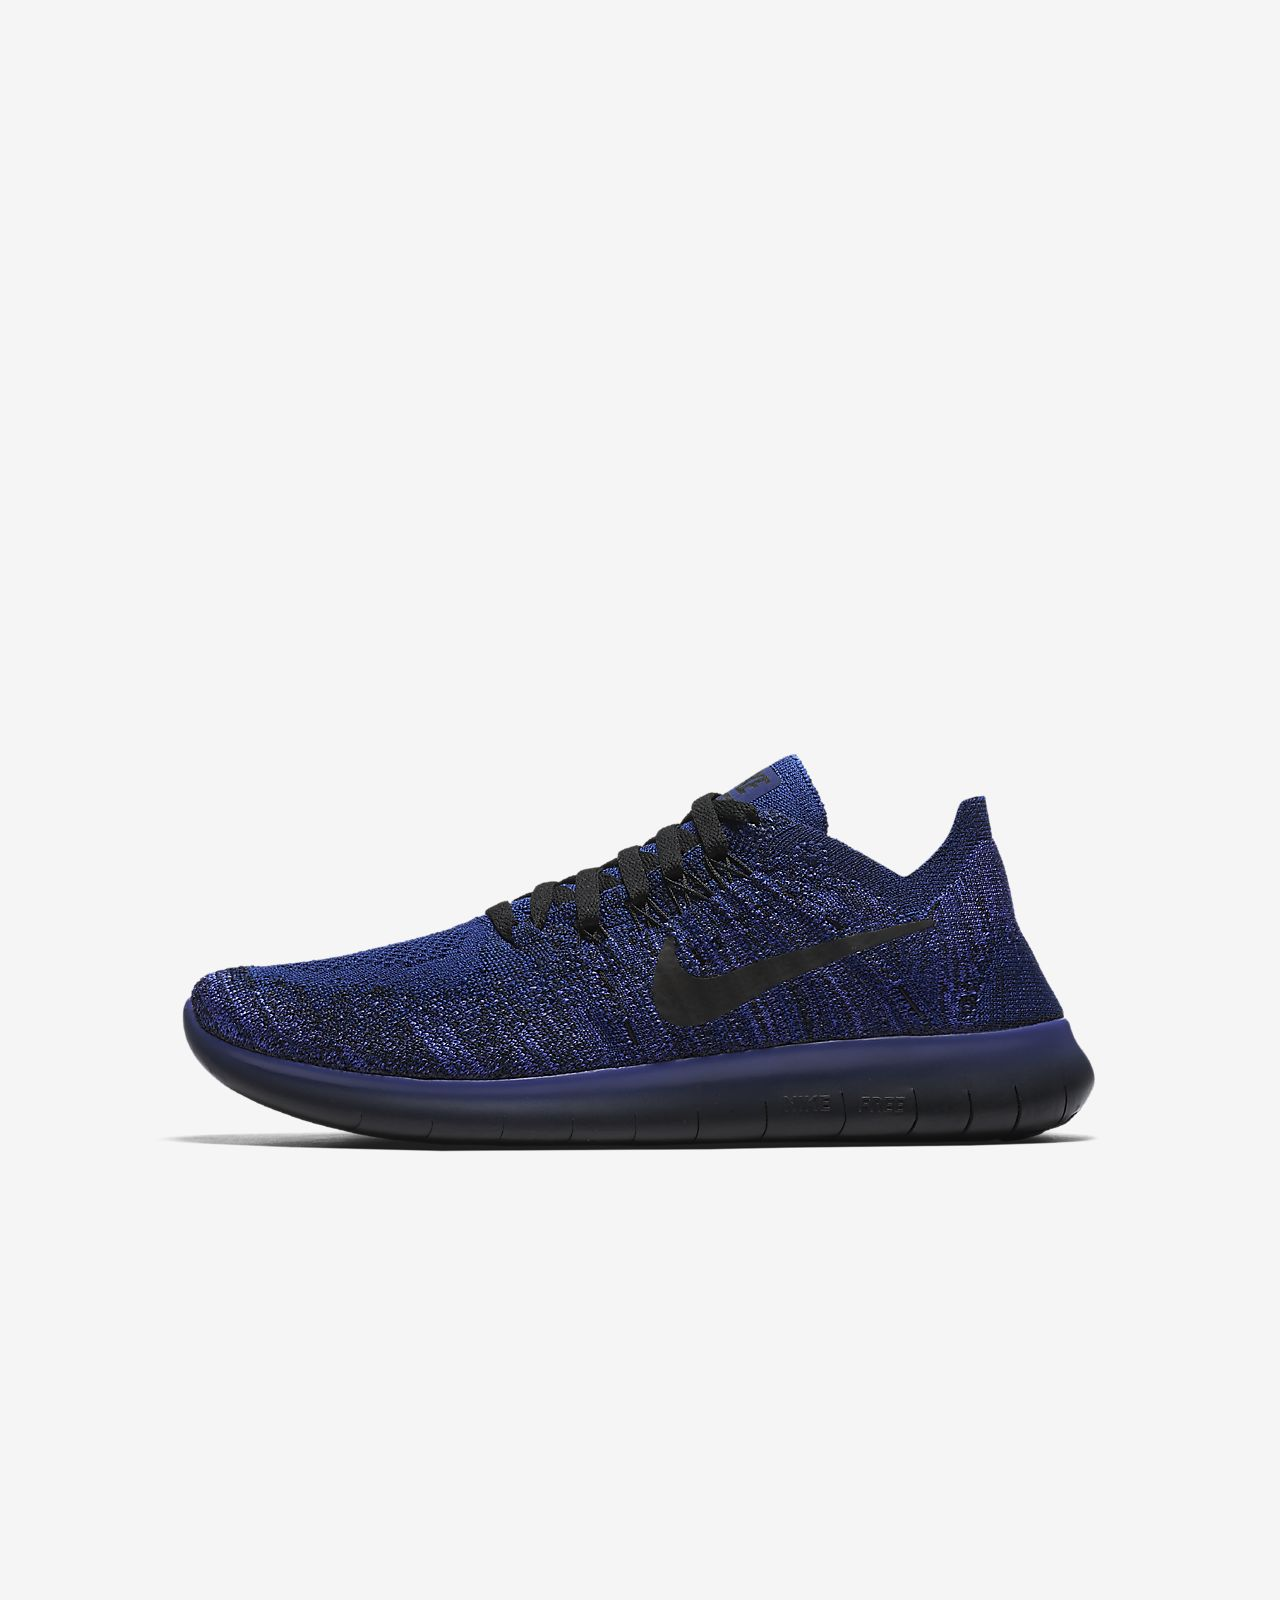 nike free rn flyknit 2017 men's nz